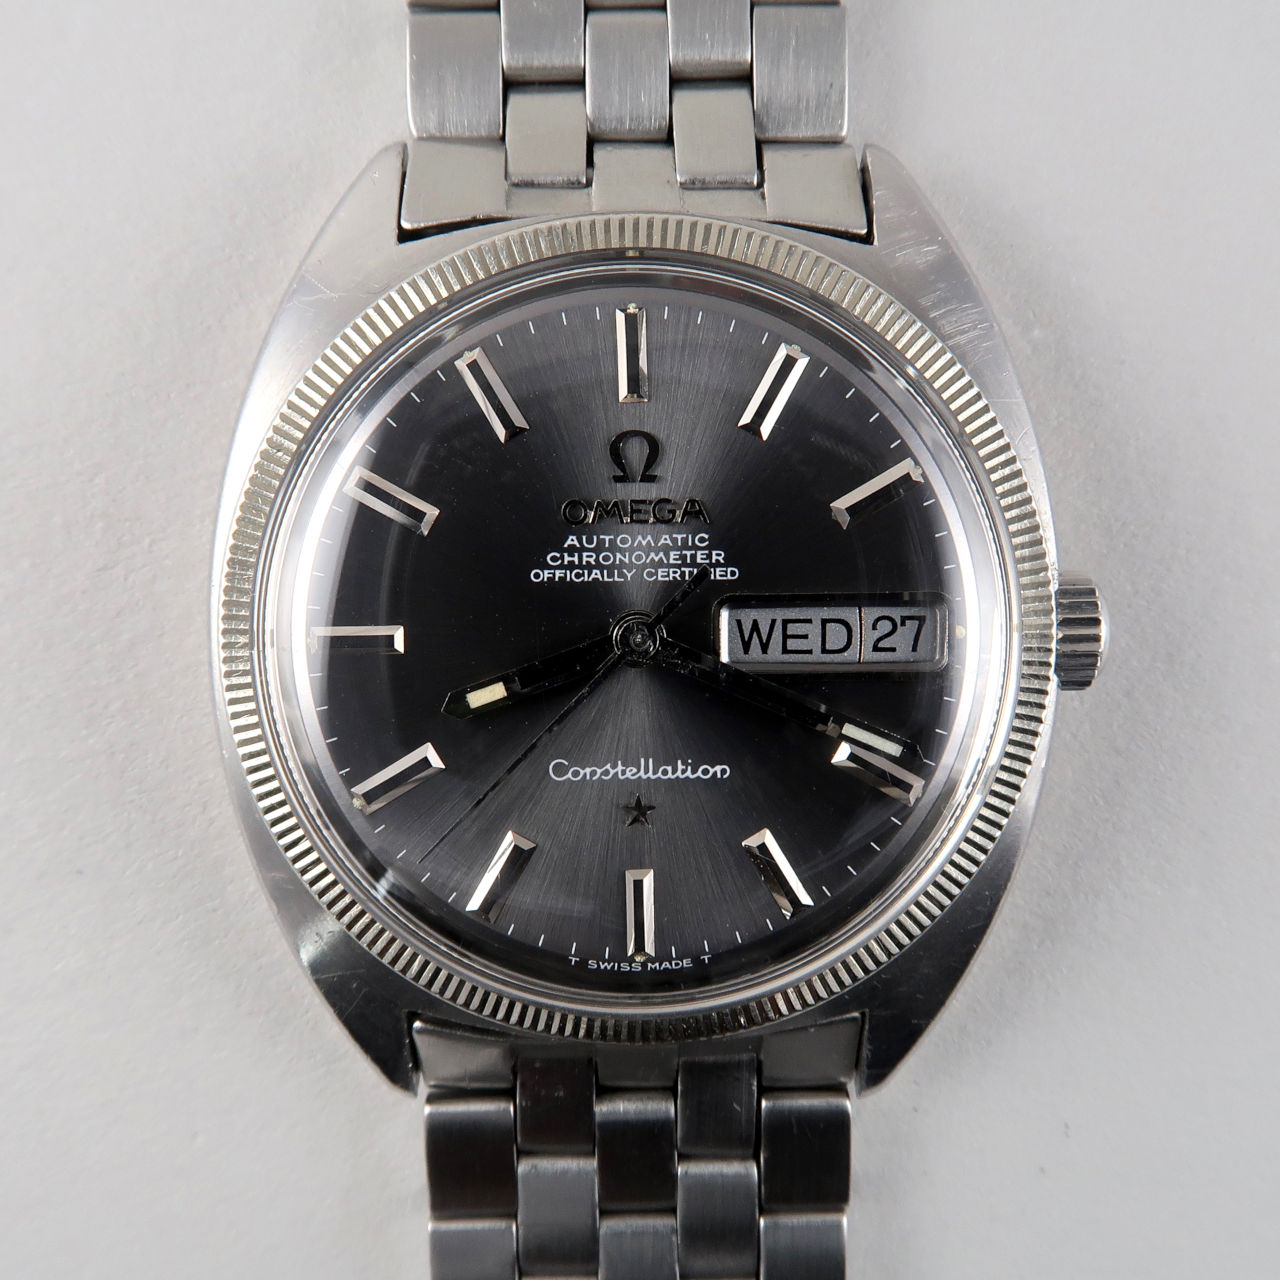 Omega Constellation Ref. 168.029 circa 1969